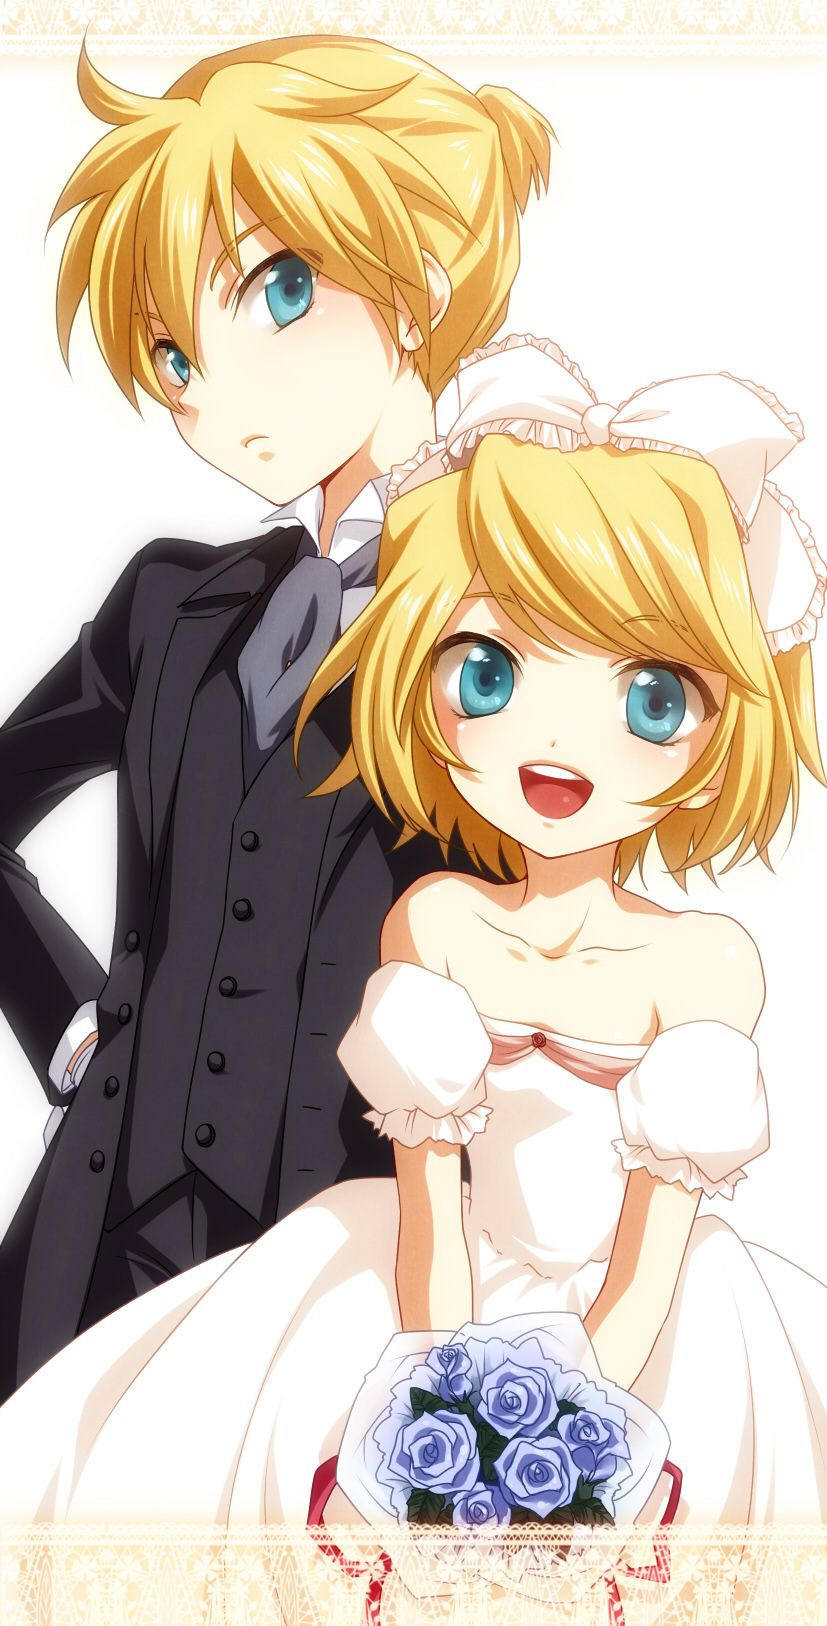 Looks like Rin and Len are attending a wedding as ring